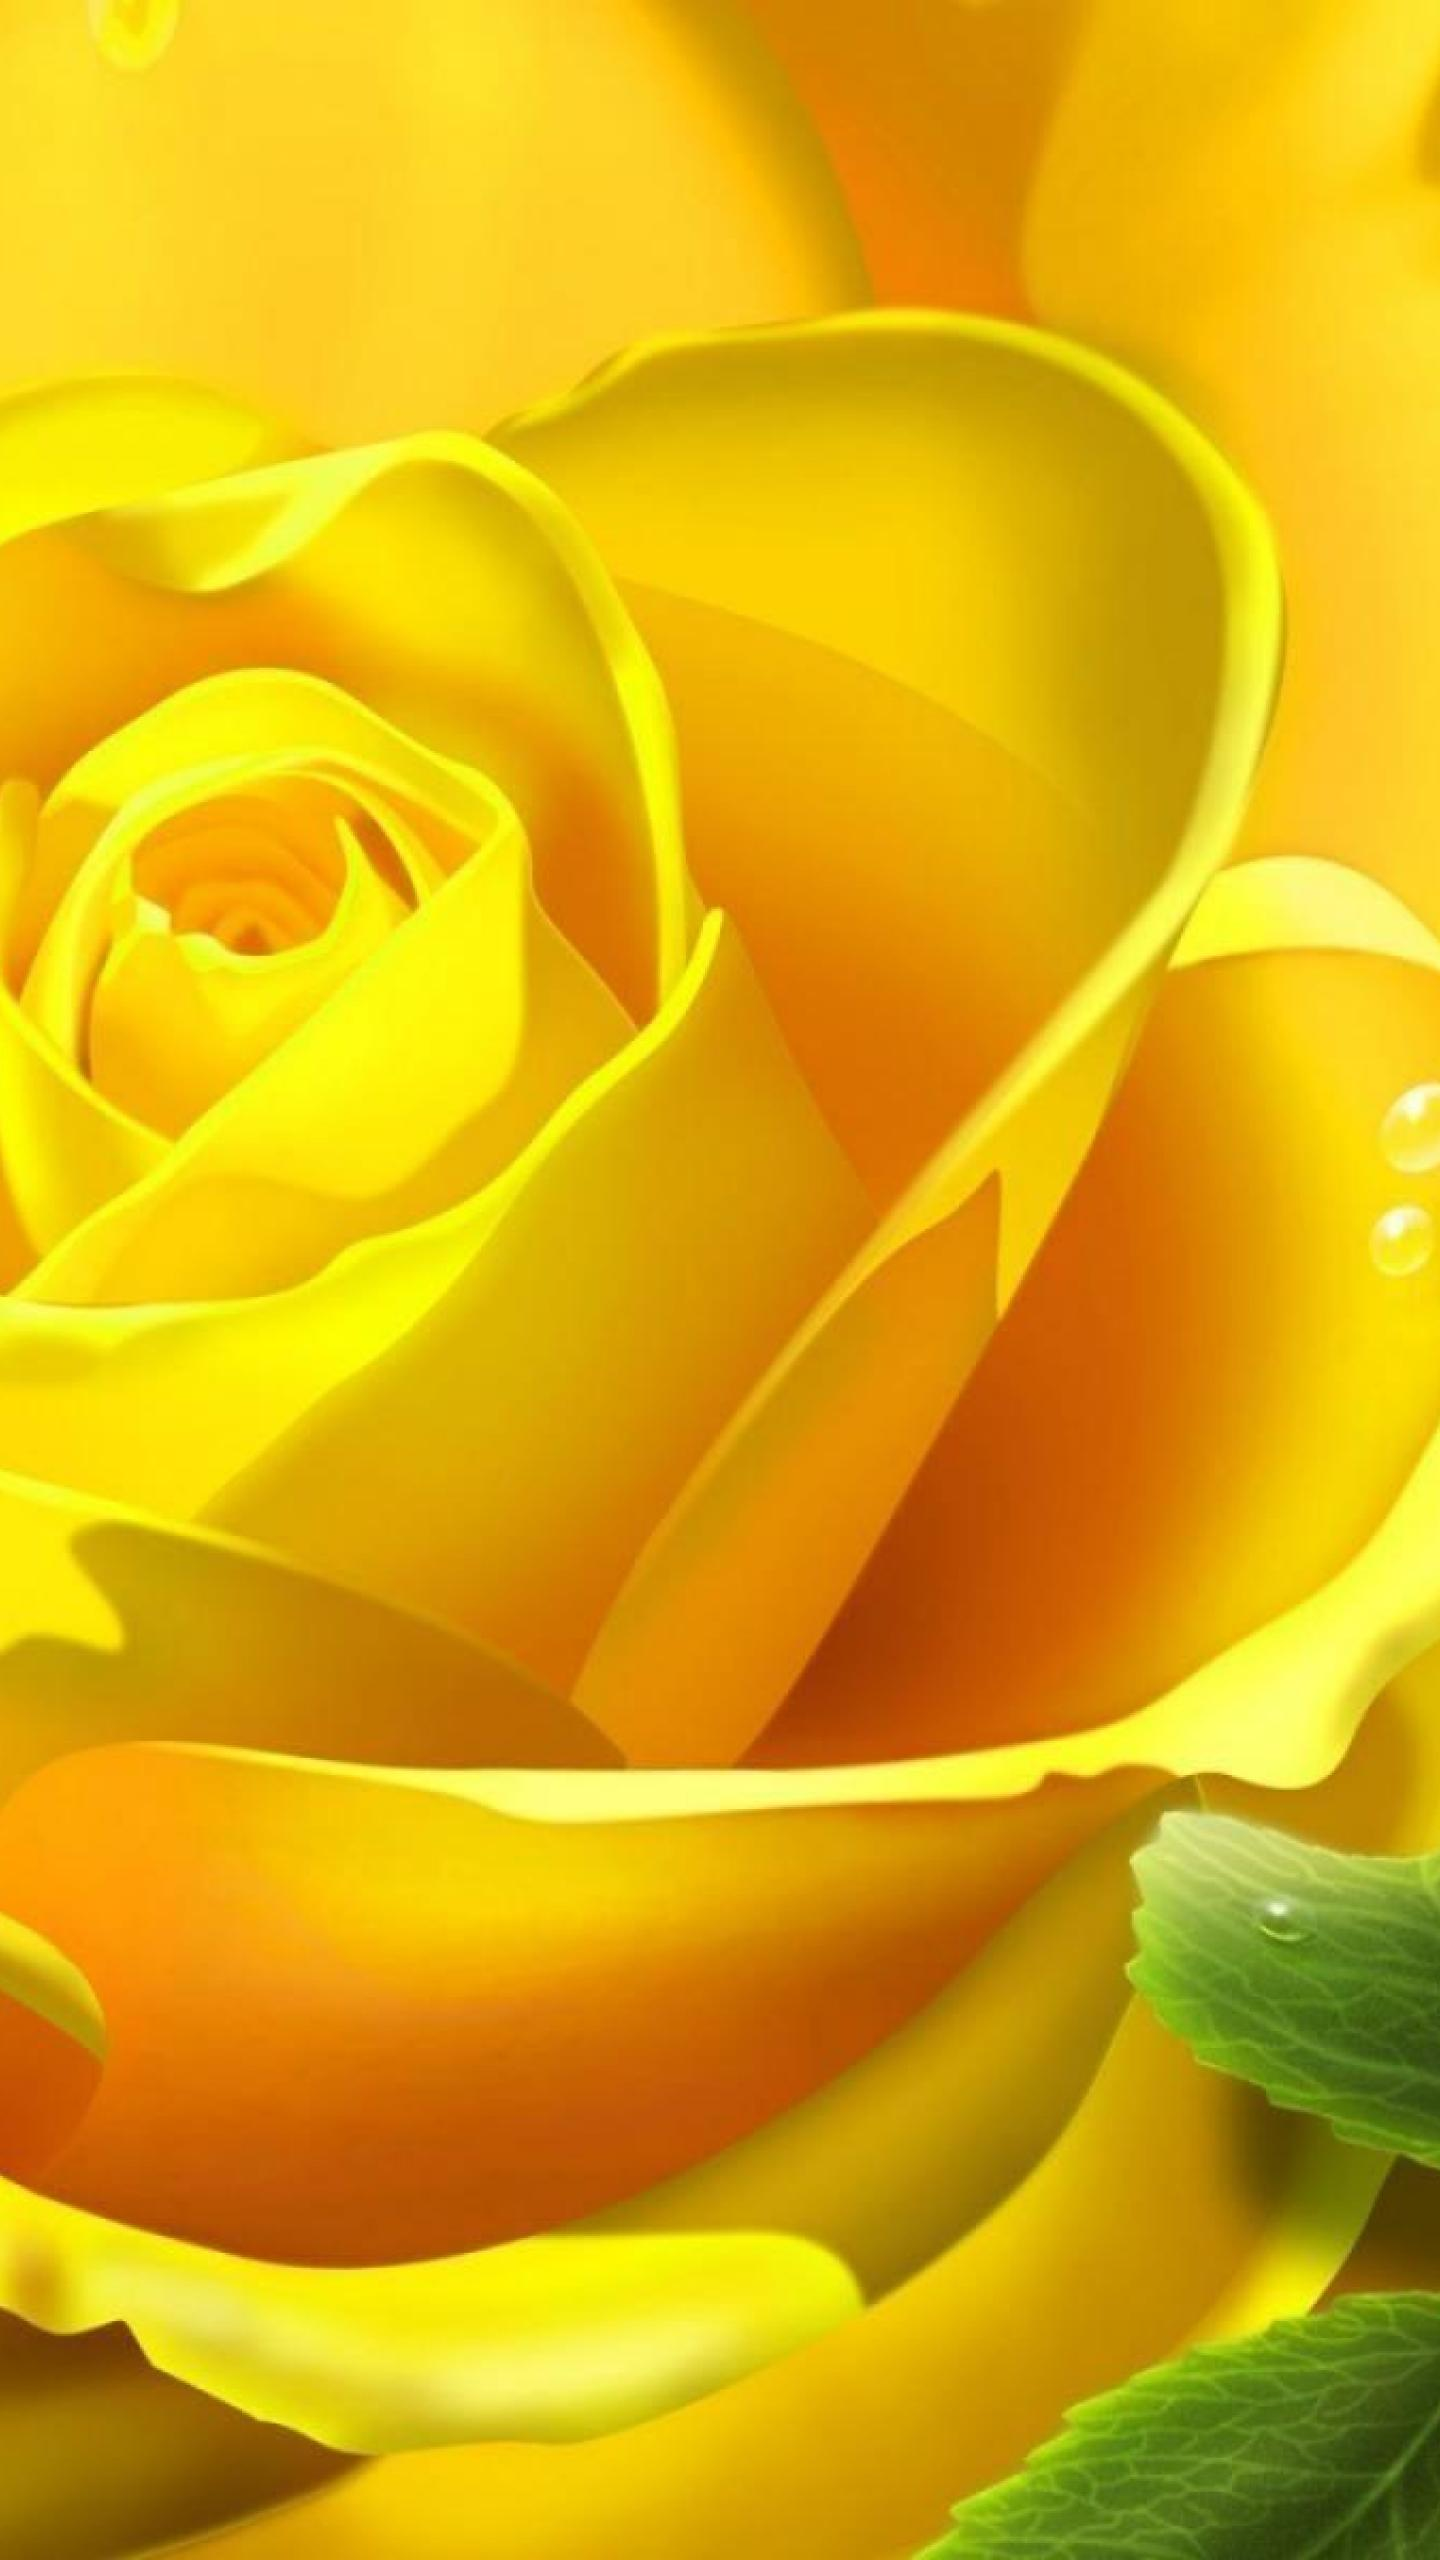 Samsung Galaxy Note 4 5 Samsung Galaxy S6 S6 Edge Yellow Rose Flower Wallpaper Mobile 498692 Hd Wallpaper Backgrounds Download